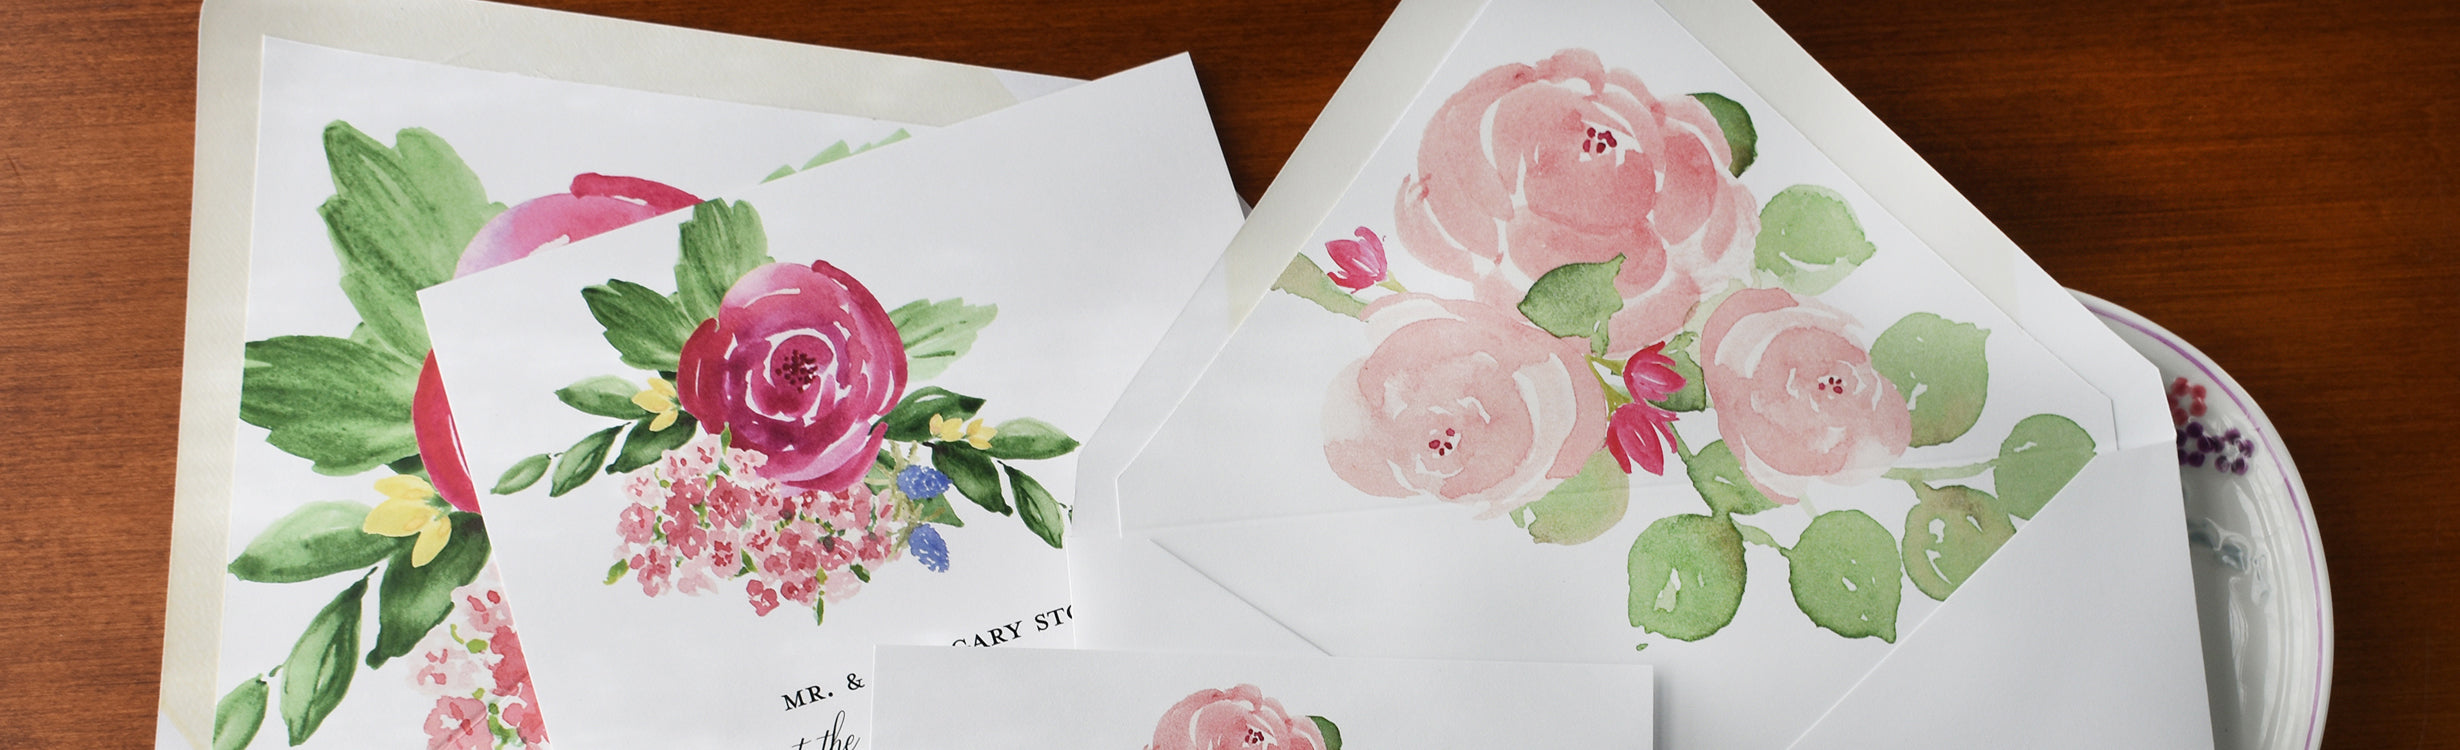 Rose watercolor stationery